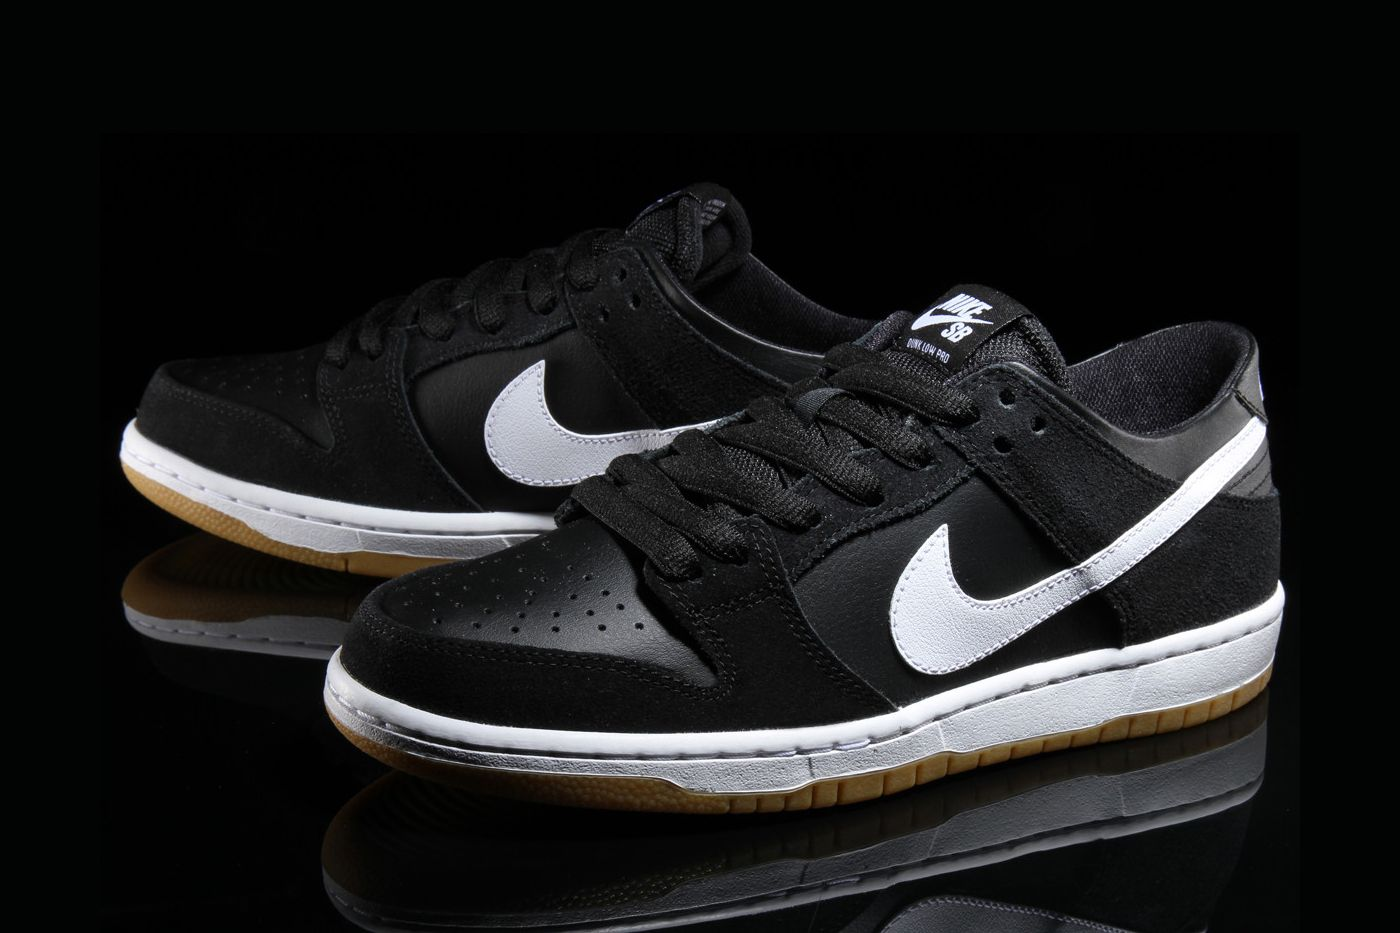 best service 3d4d3 1e732 The Nike SB Dunk Low Pro Gets Dressed in a Classic BlackWhiteGum Colorway